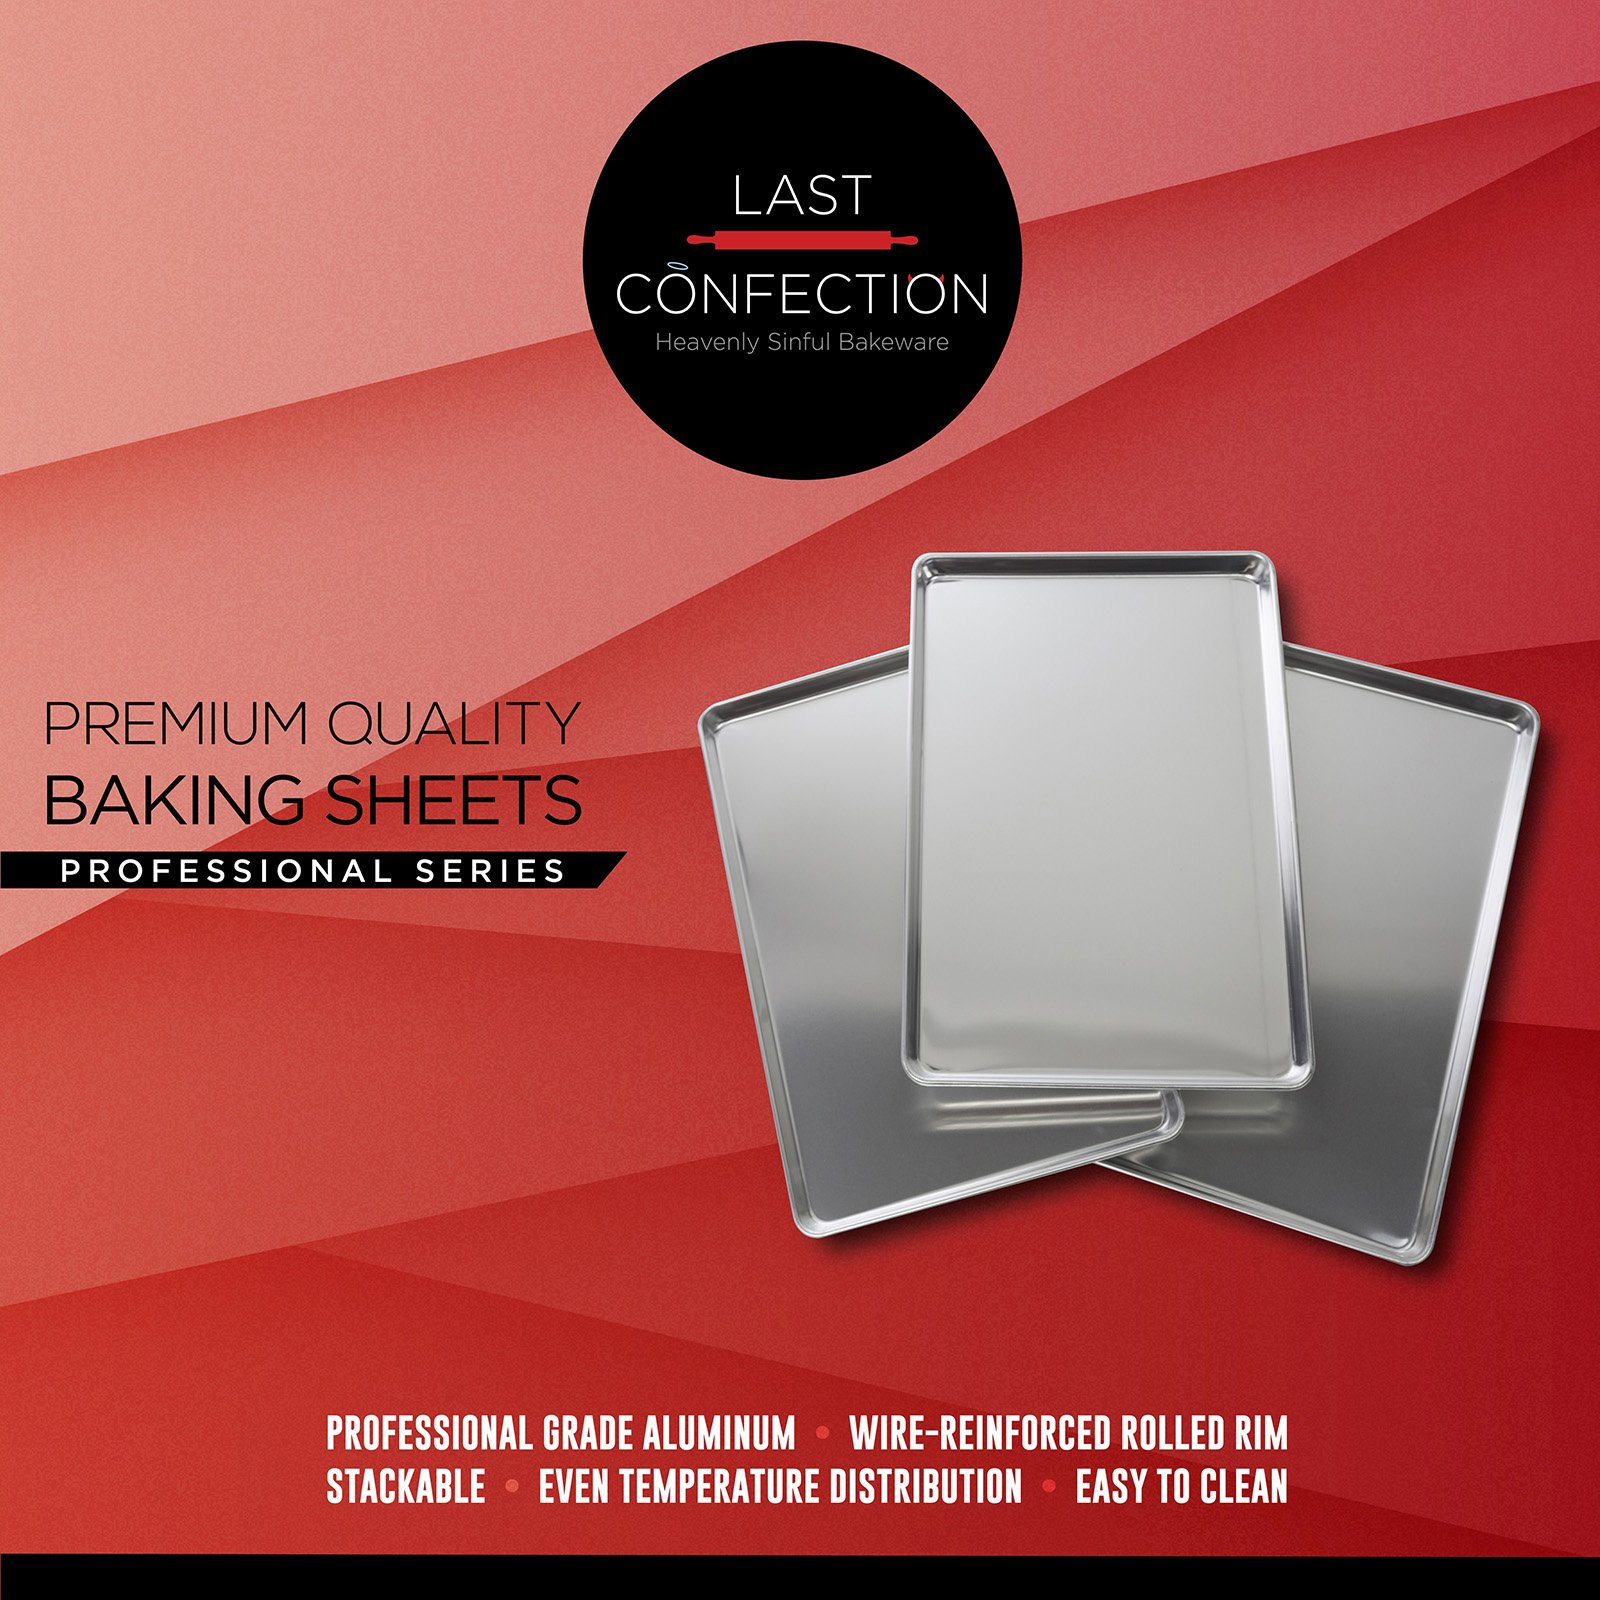 Last Confection 6 Cookie Baking Sheets 13'' x 18'' - Rimmed Aluminum Jelly Roll Trays - Half Sheet Pans by Last Confection (Image #7)